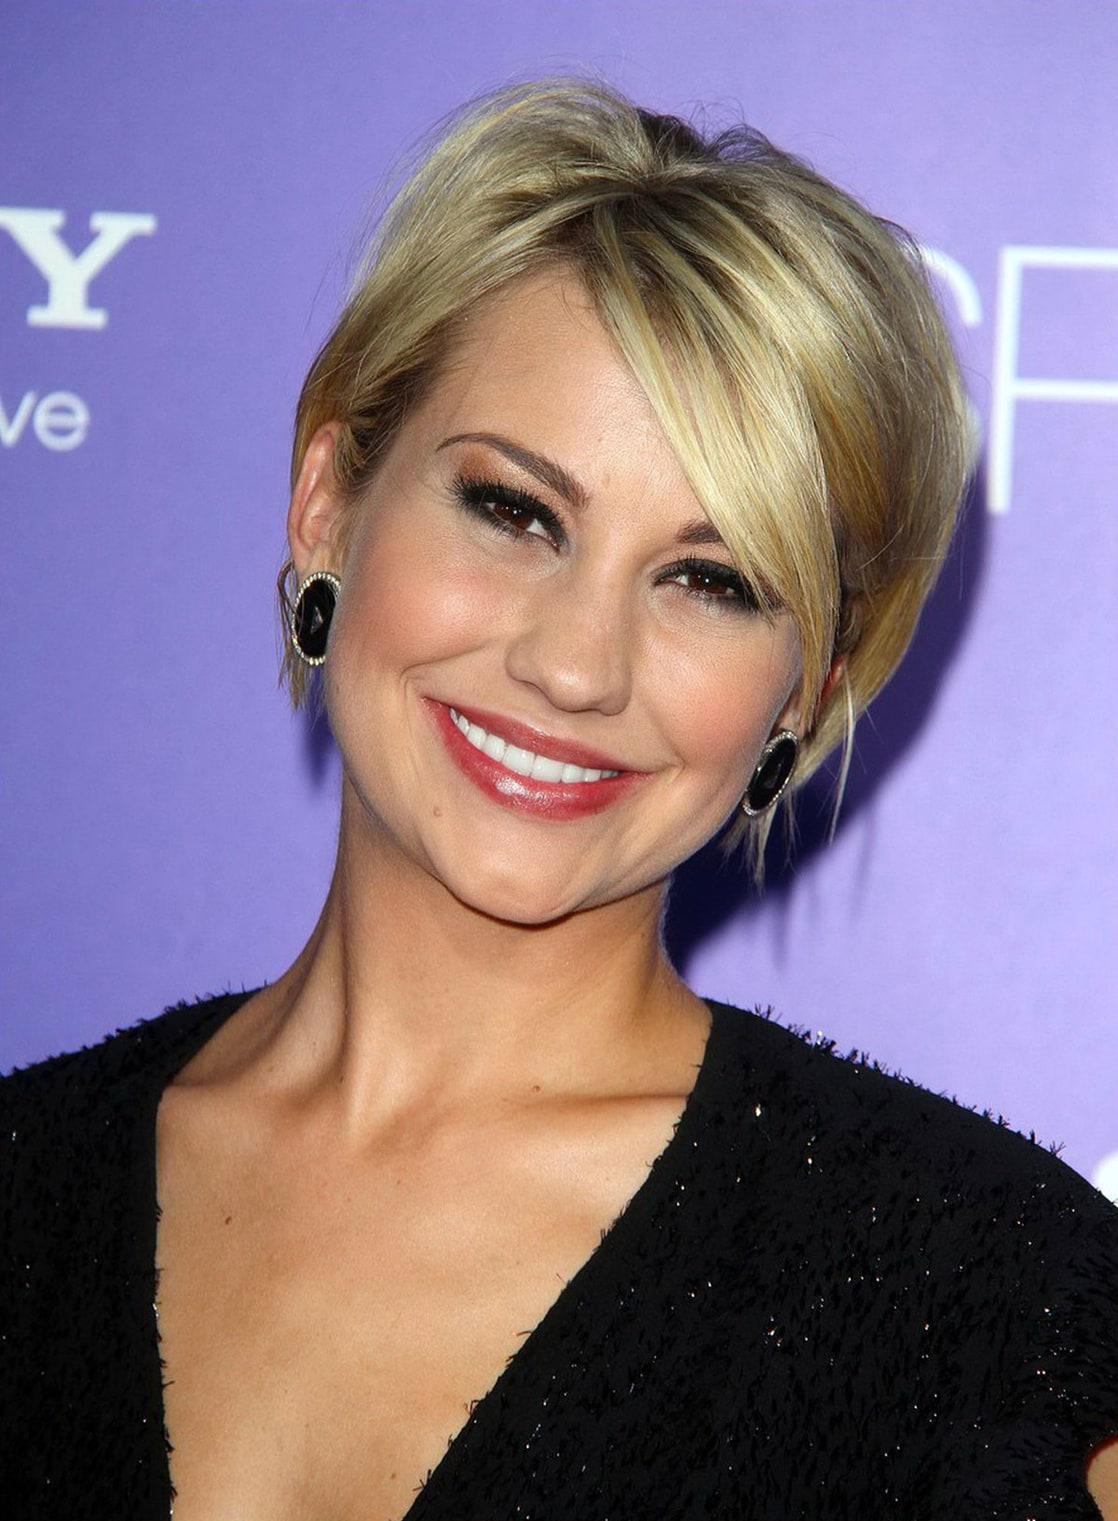 Picture Of Chelsea Kane